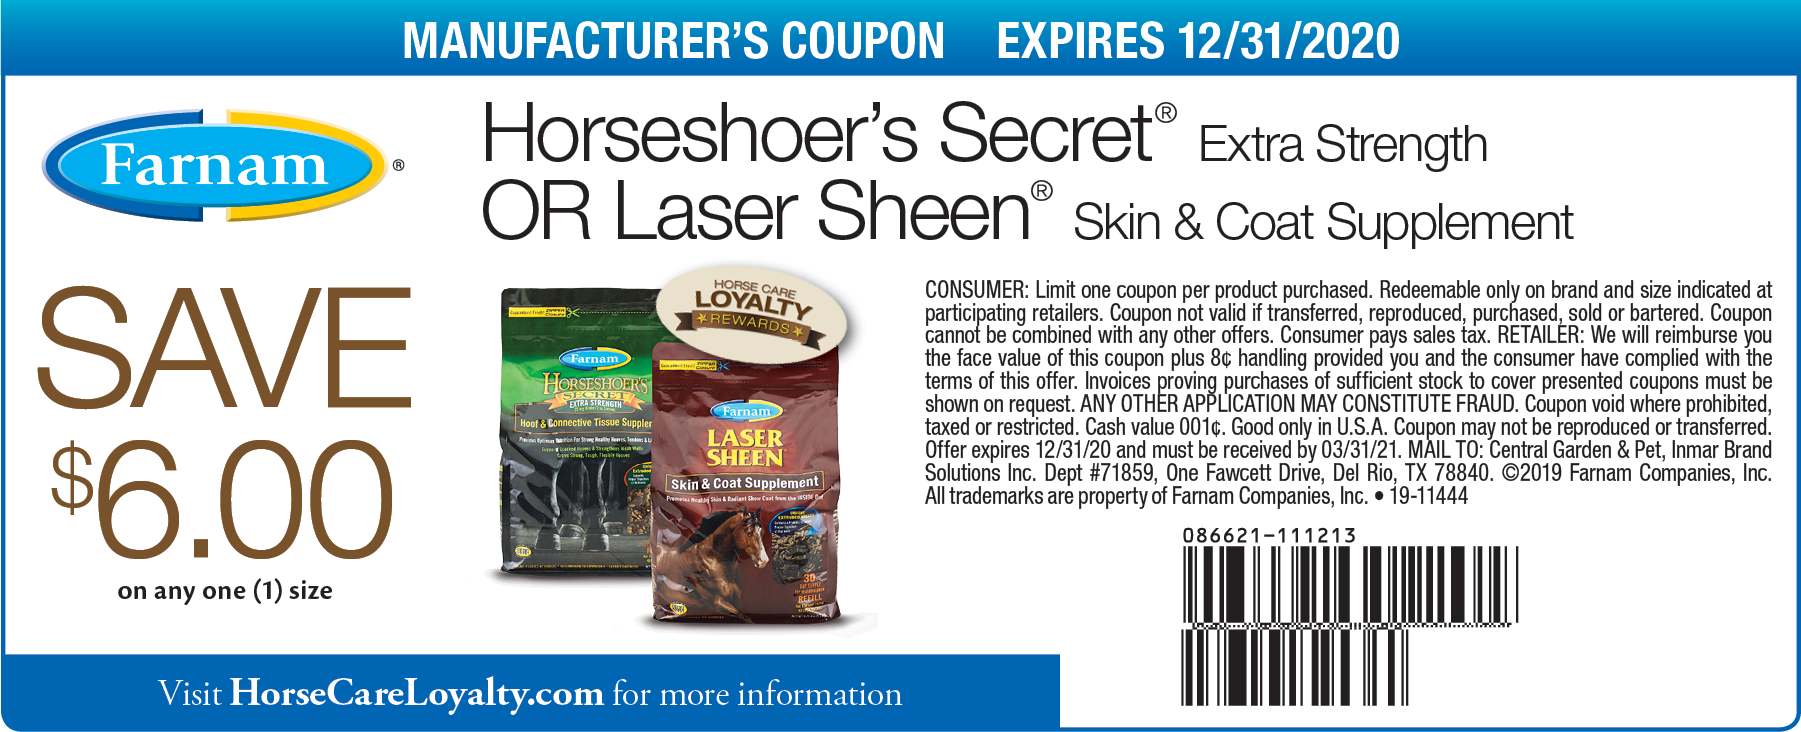 19-11444_FM_111213_HS_ExtraStrenght_LaserSheen_SkinCoat_Web_Coupon